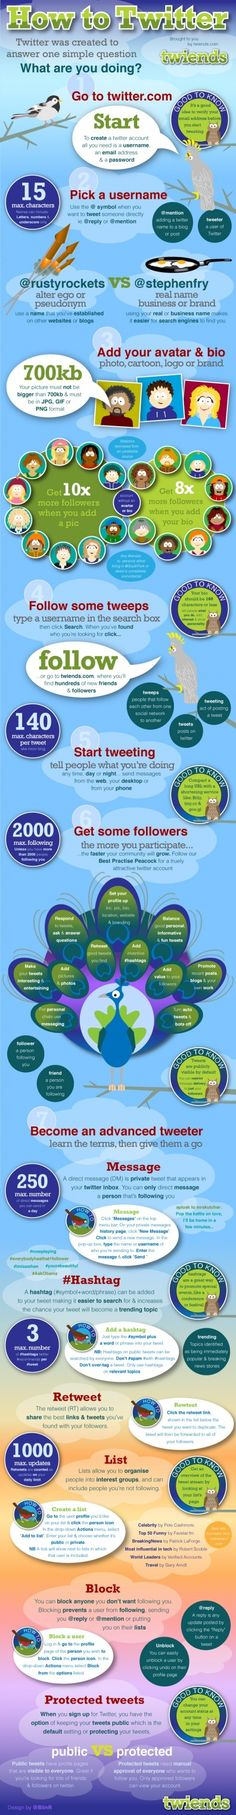 How to #Twitter [#Infographic]